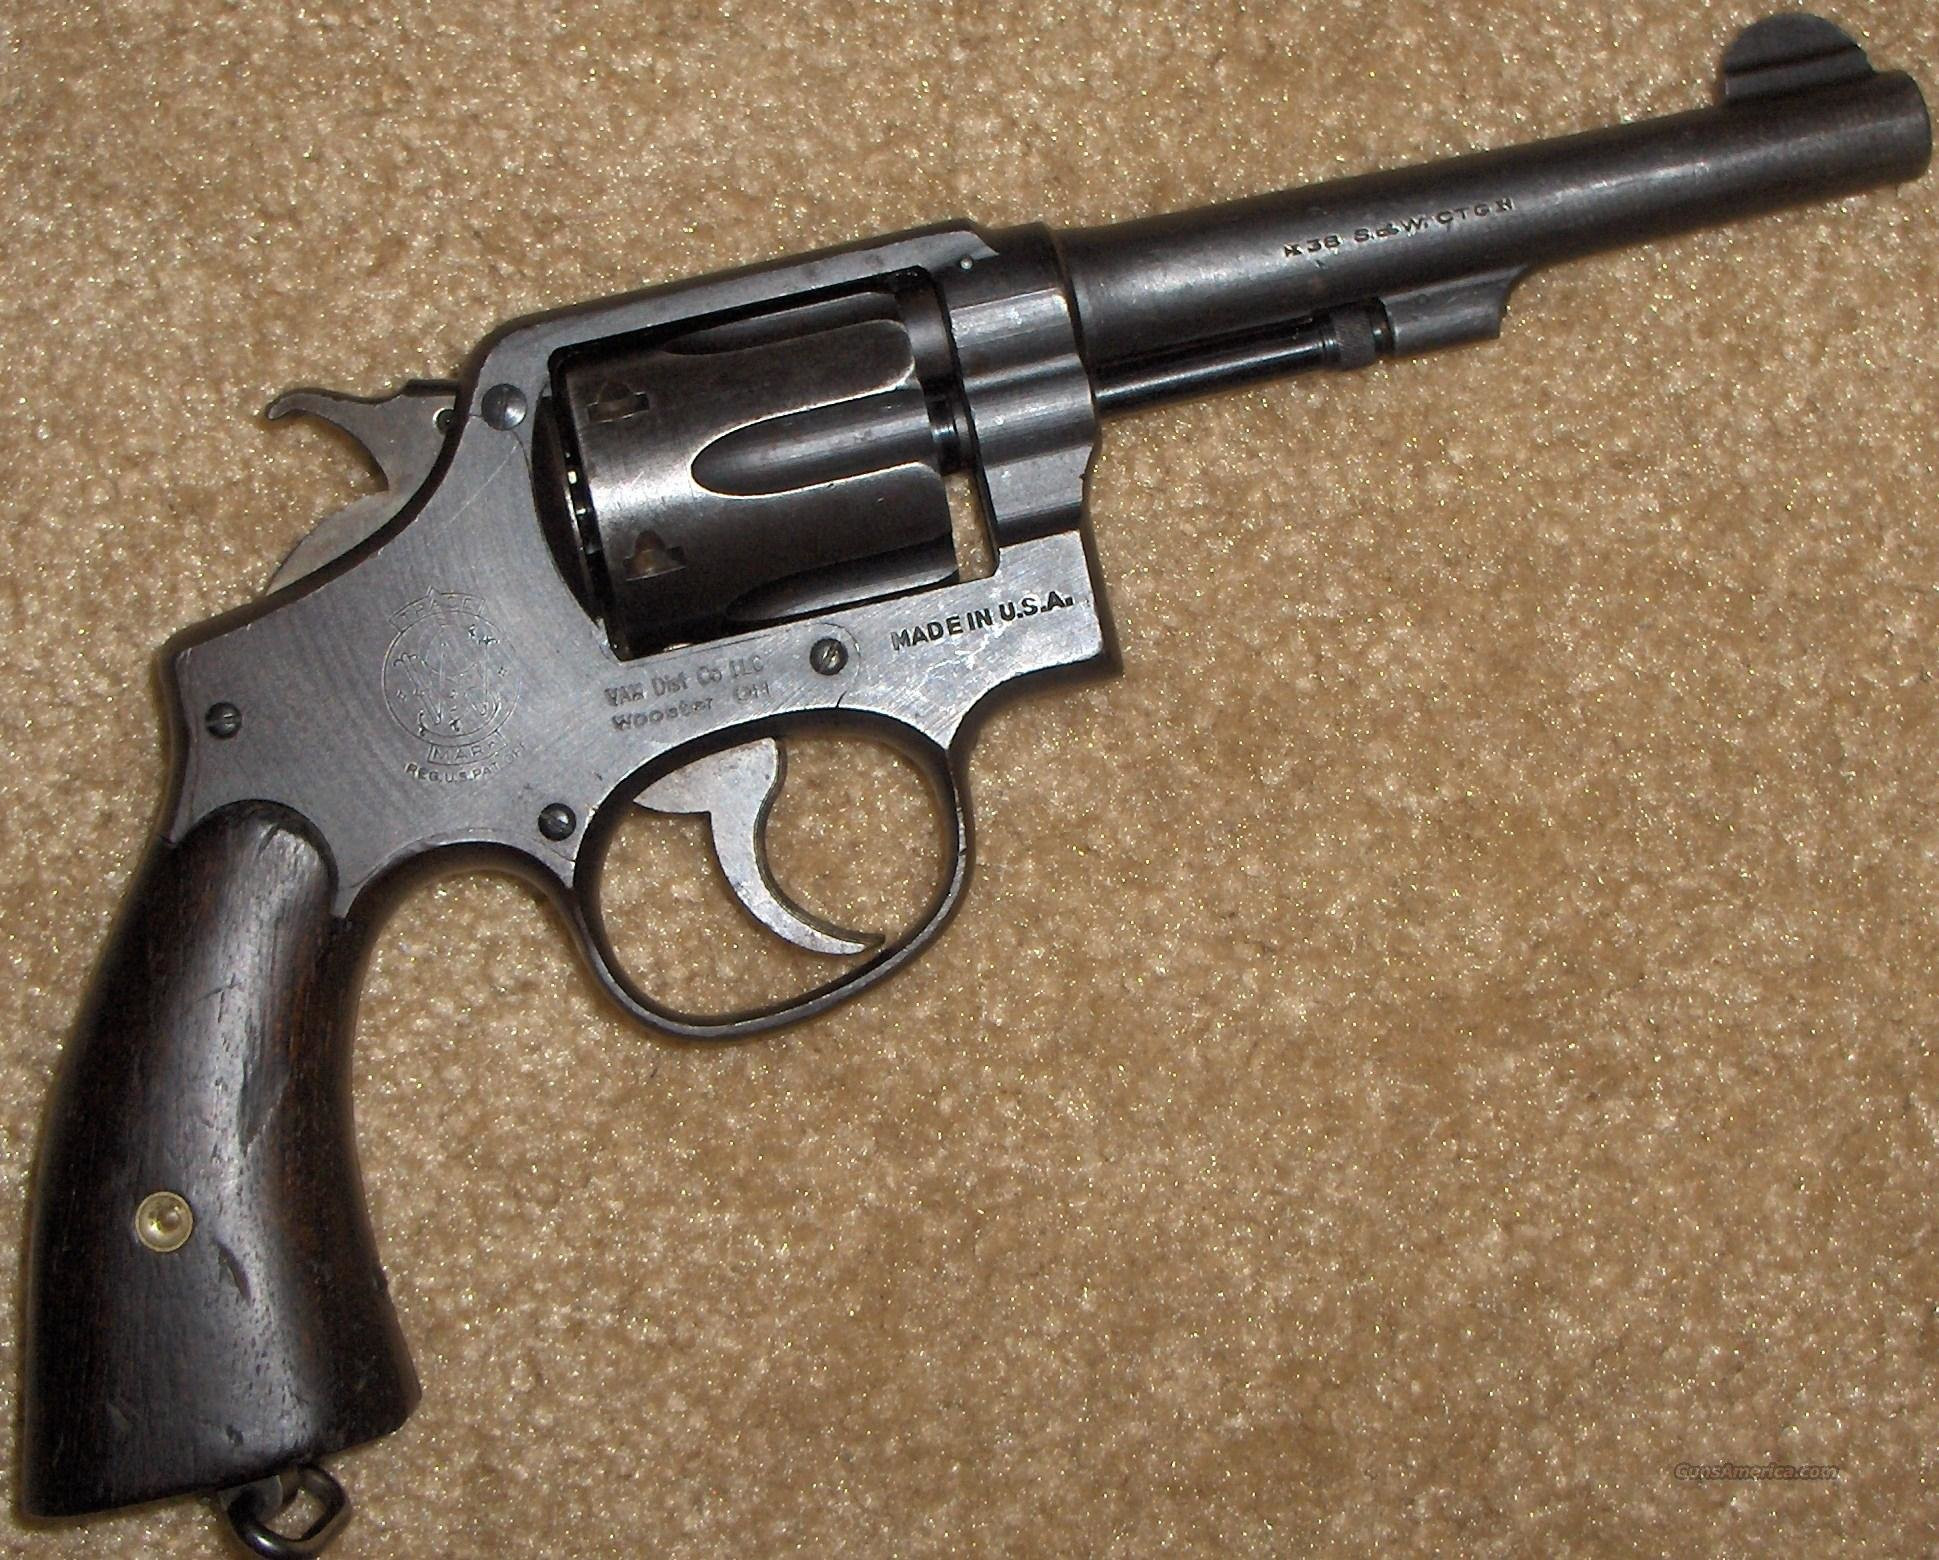 S&W Victory 38 Caliber Revolver US Army Ordnance Markings  Guns > Pistols > Smith & Wesson Revolvers > Pre-1945